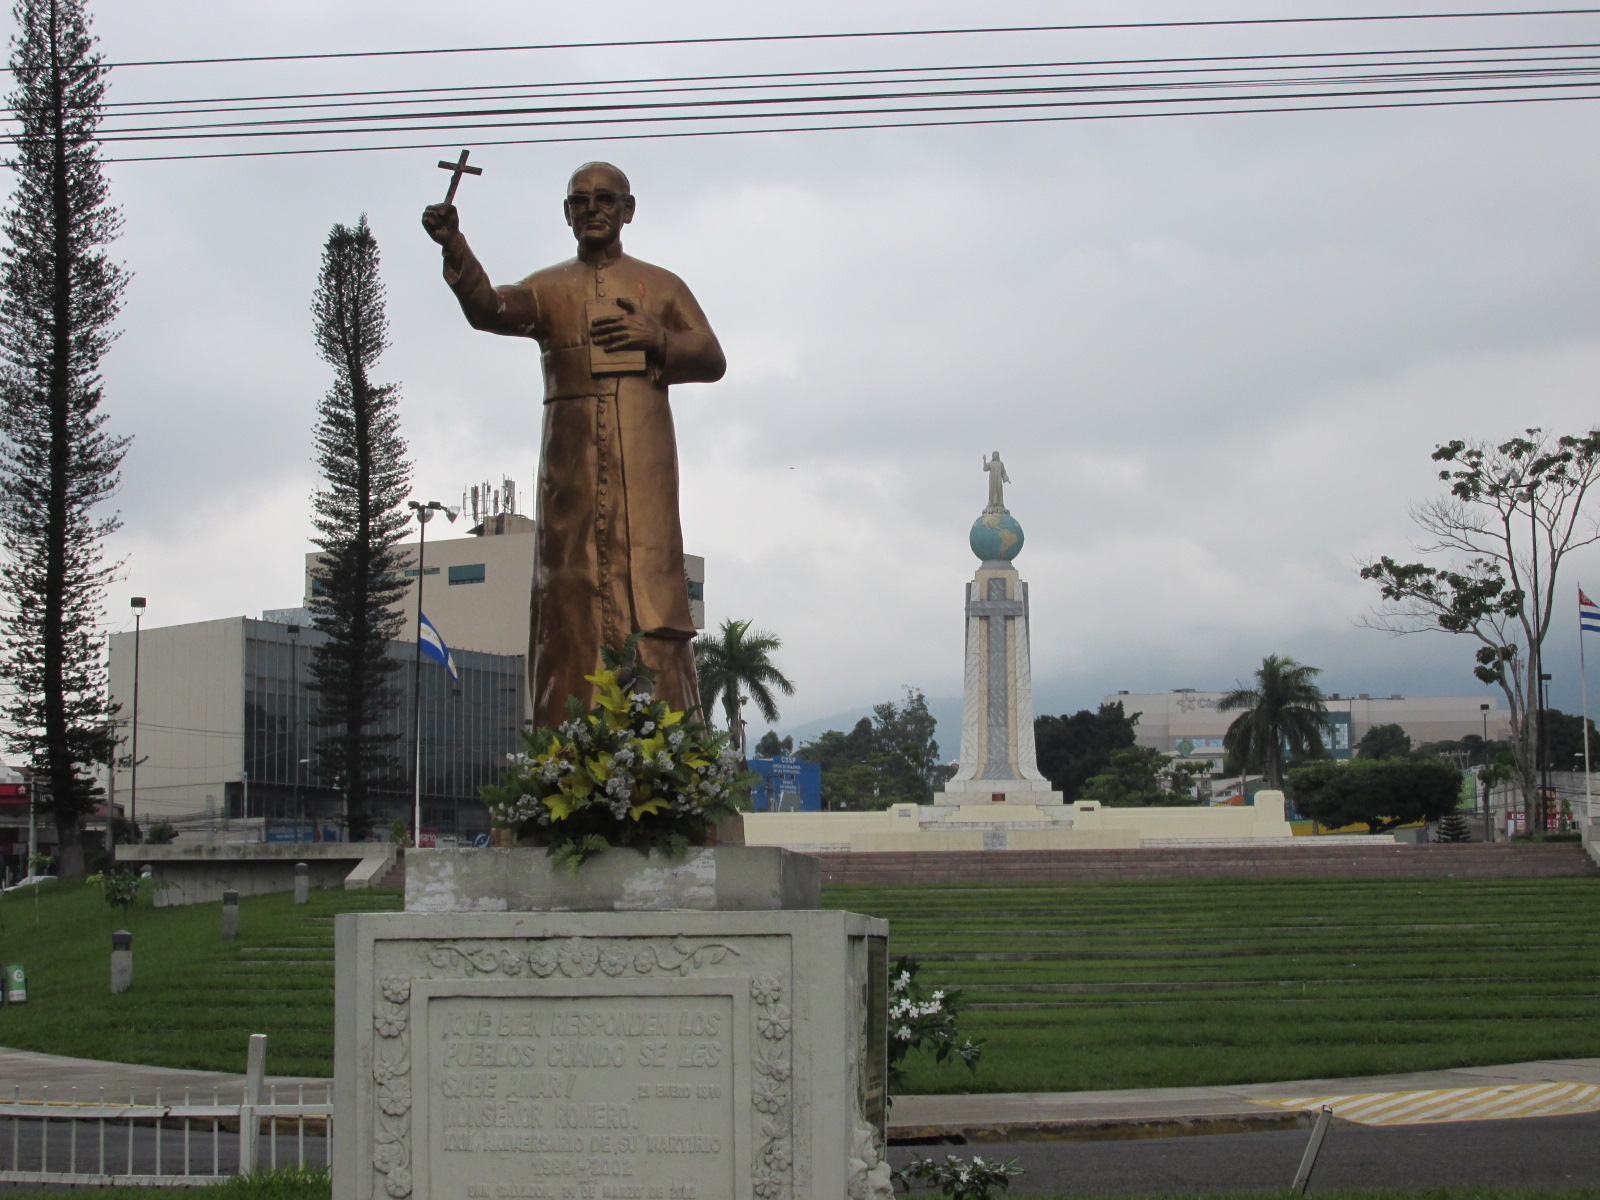 Visa policy of El Salvador moreover Our Lady Of Fatima likewise El salvador international airport moreover 143810 Carles Francino besides Worth Revisiting Oscar Romero Prophet Of Hope. on monsenor romero wikipedia